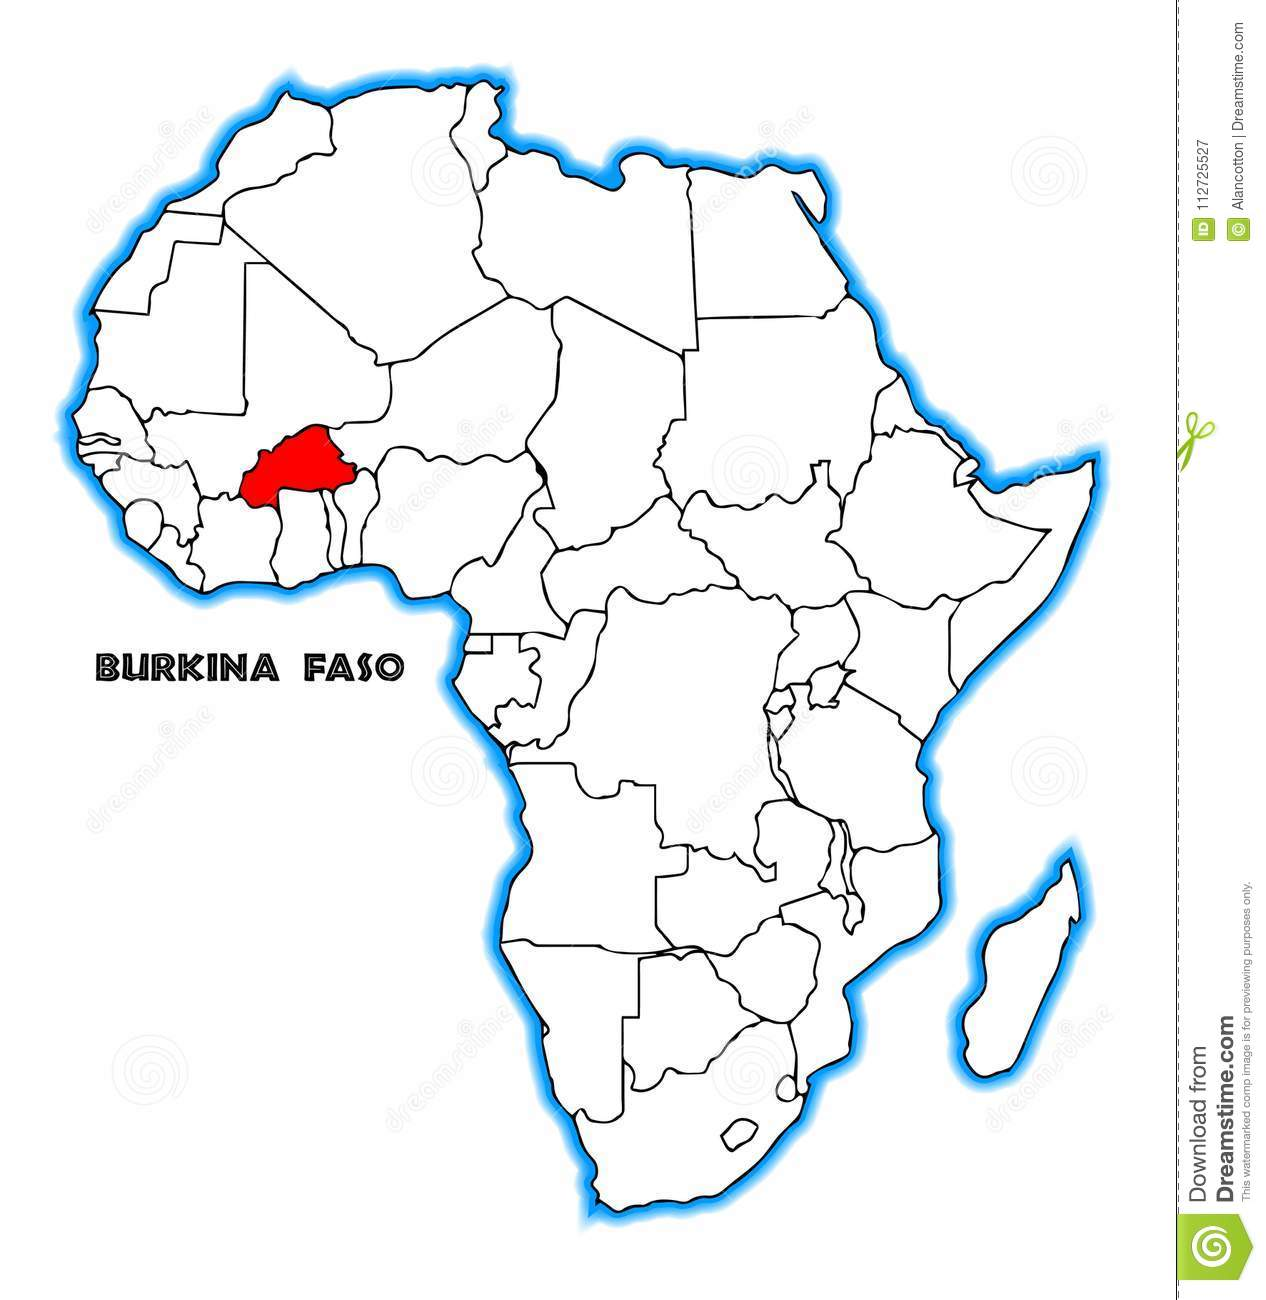 Burkina Faso Africa Map stock vector. Illustration of africa